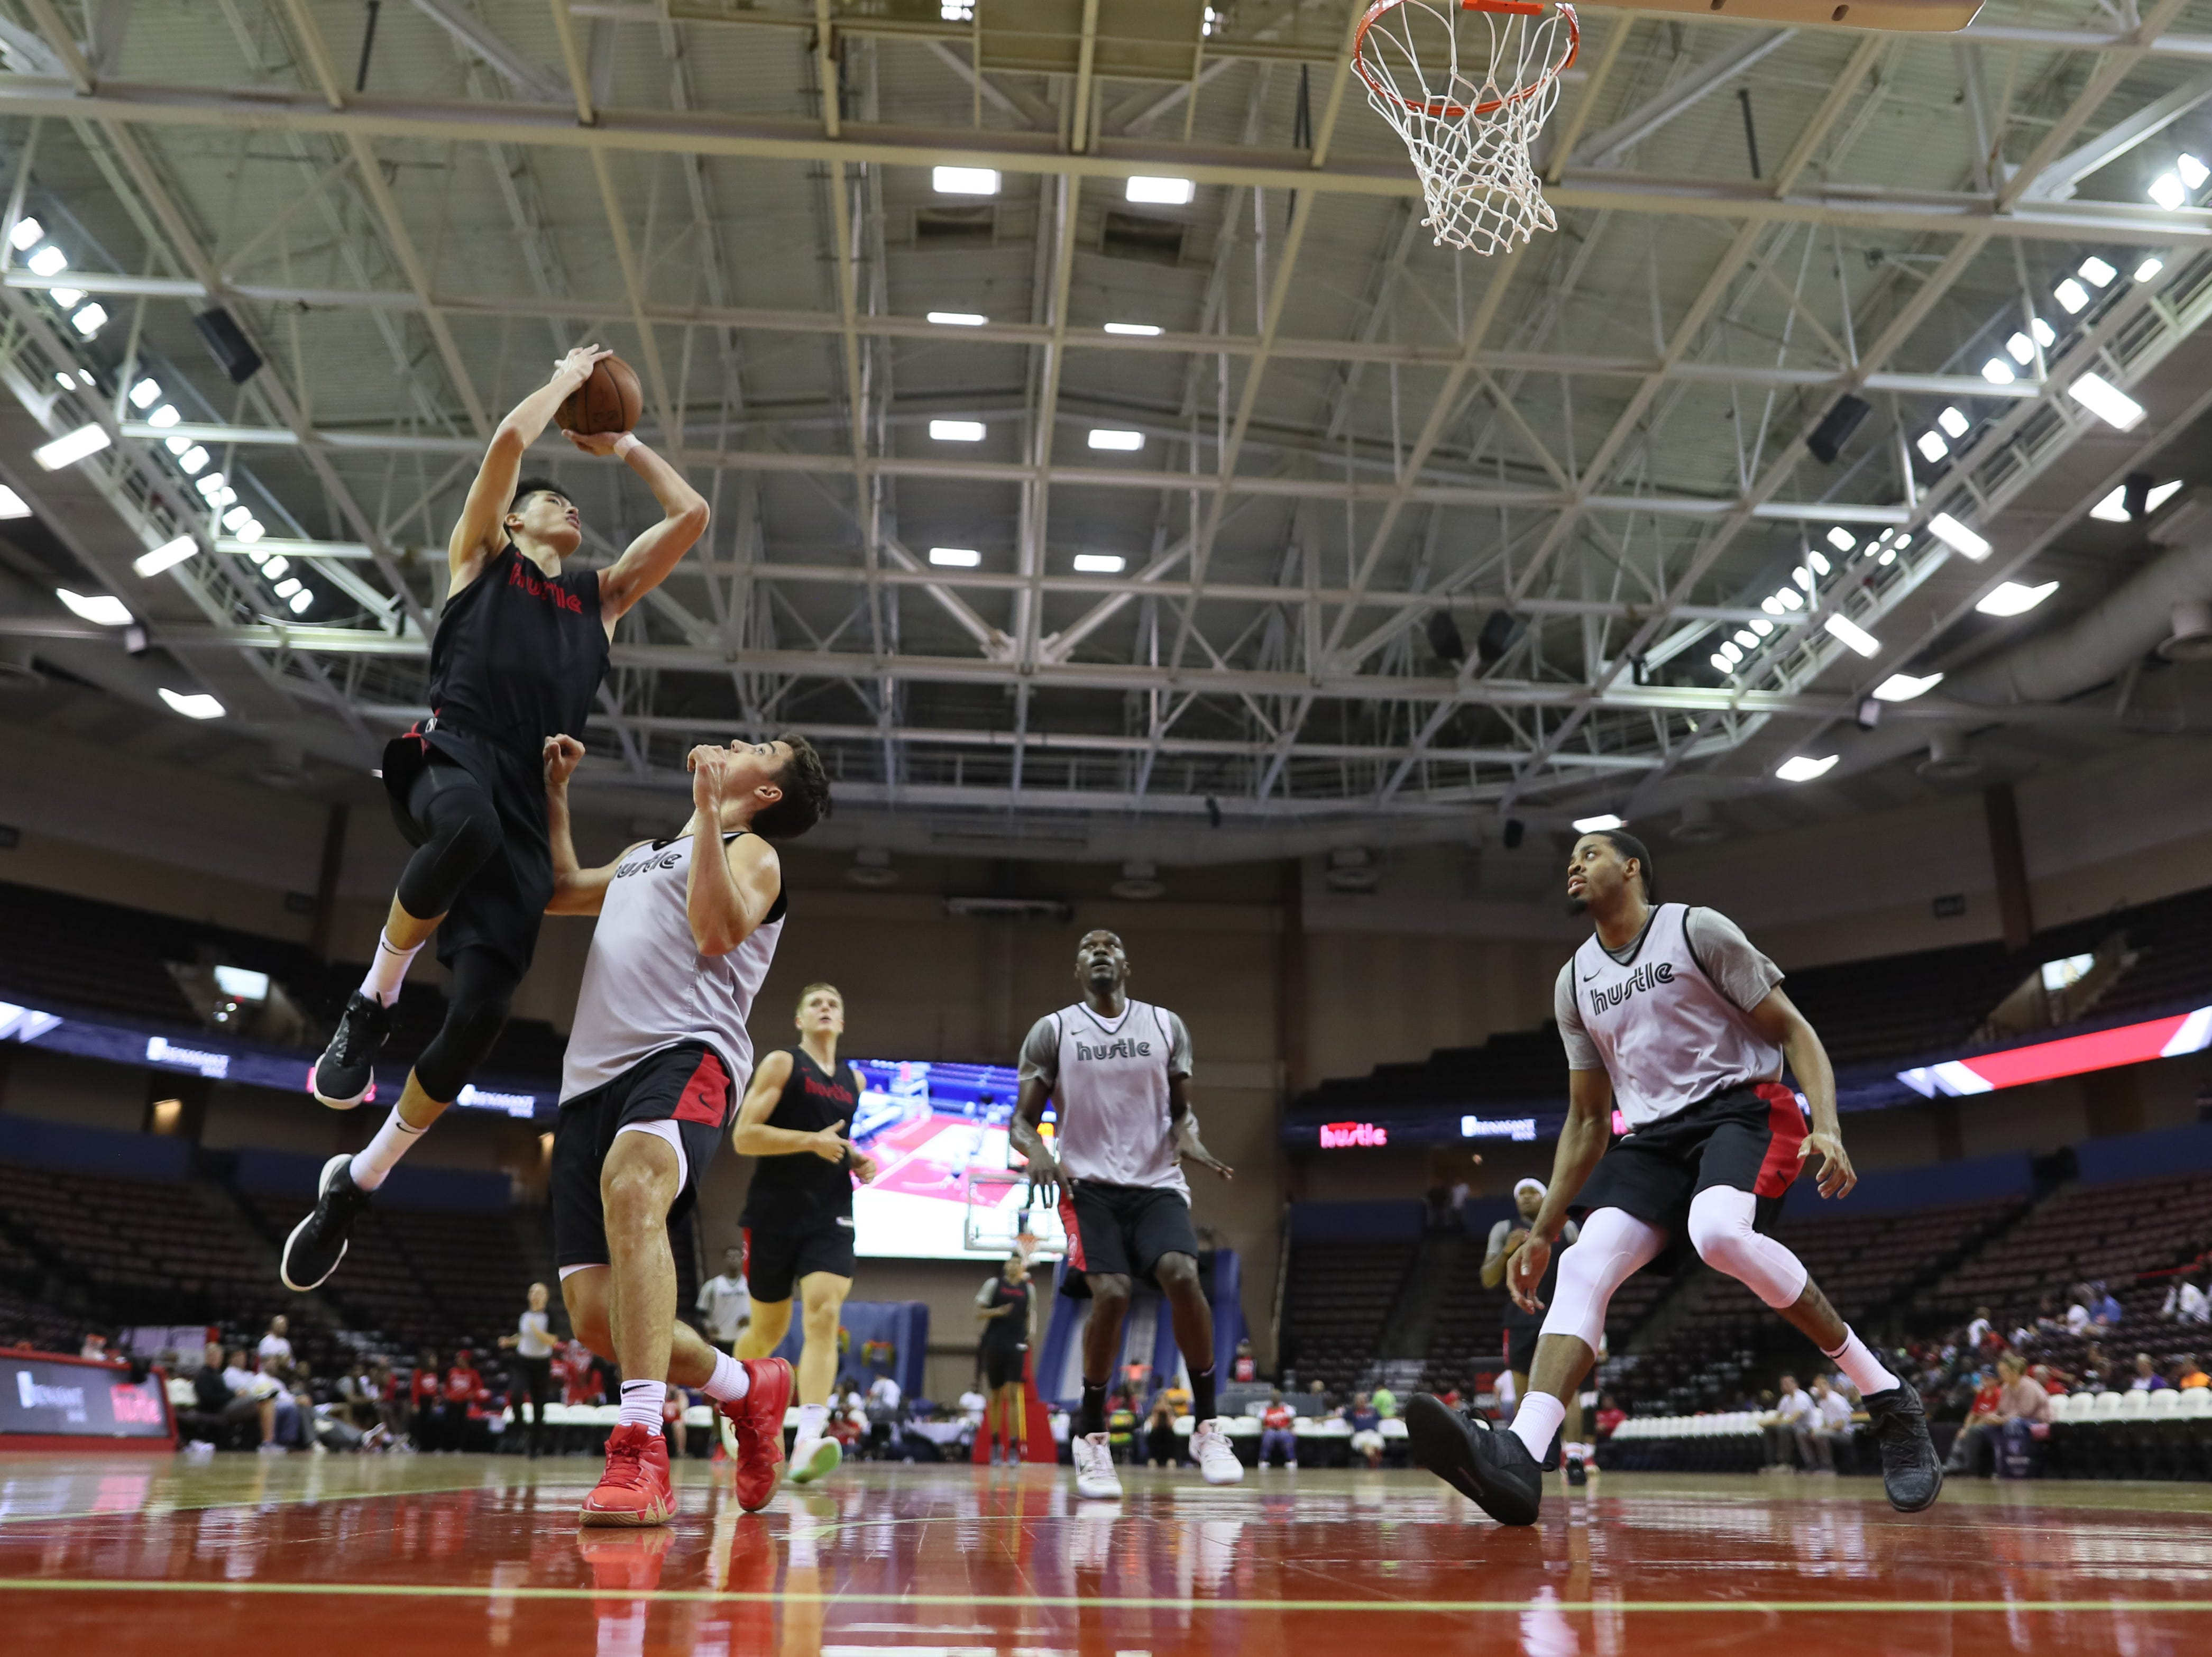 Memphis Hustle forward Yuta Watanabe puts up a shot as the team scrimmages during the Family Fun Day at the Landers Center on Sunday, Oct. 28, 2018.